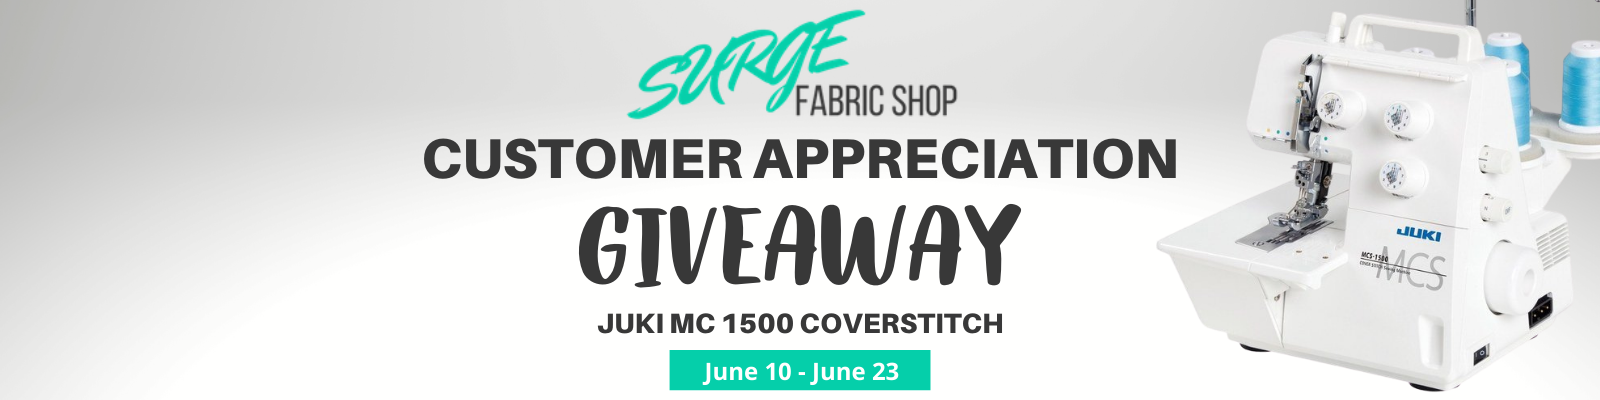 2020 Customer Appreciation Giveaway